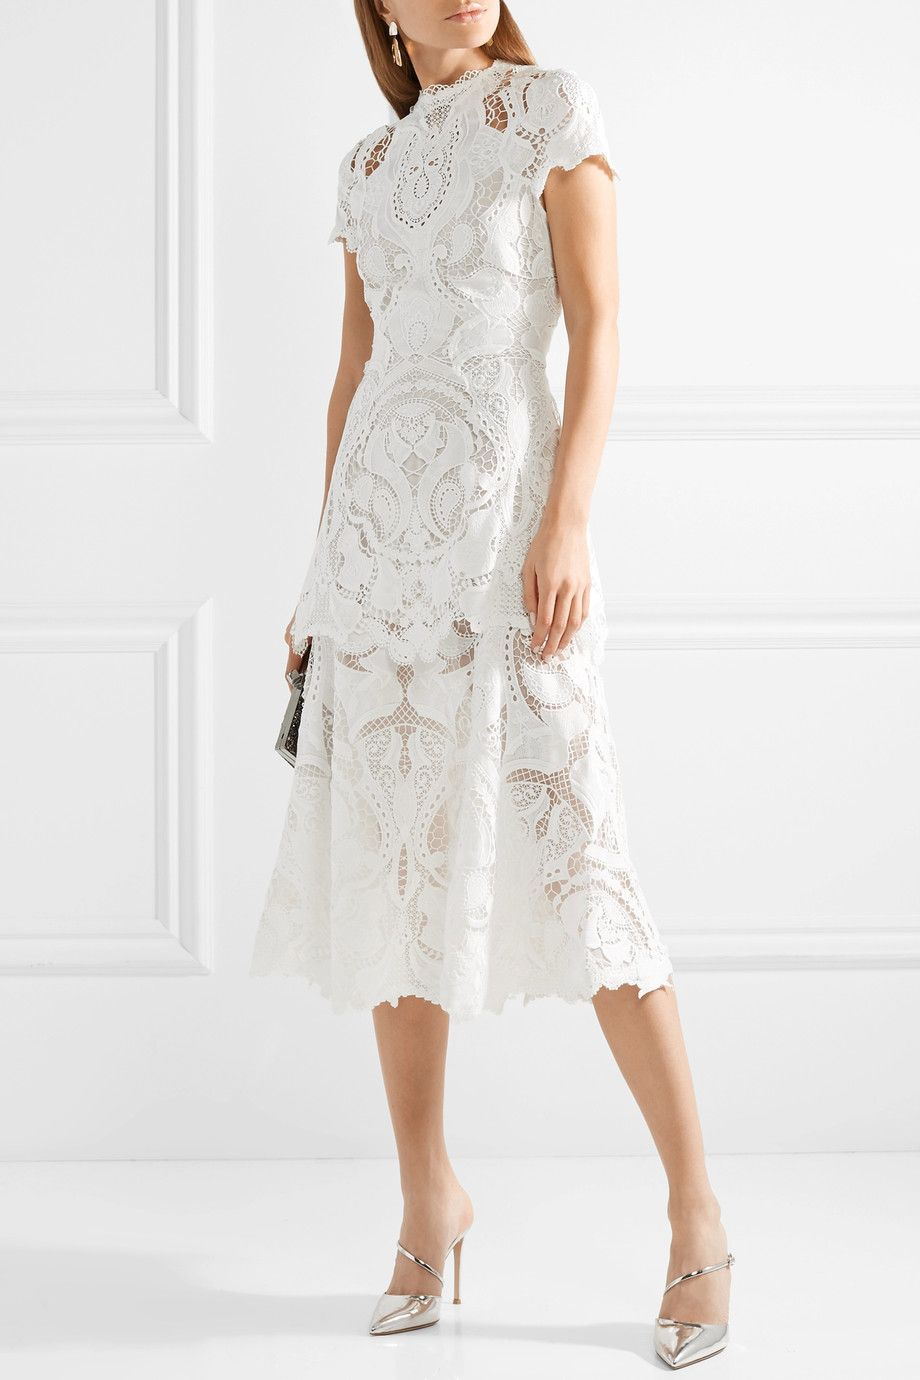 lace-embroidered midi dress - White Jonathan Simkhai PIAdJ